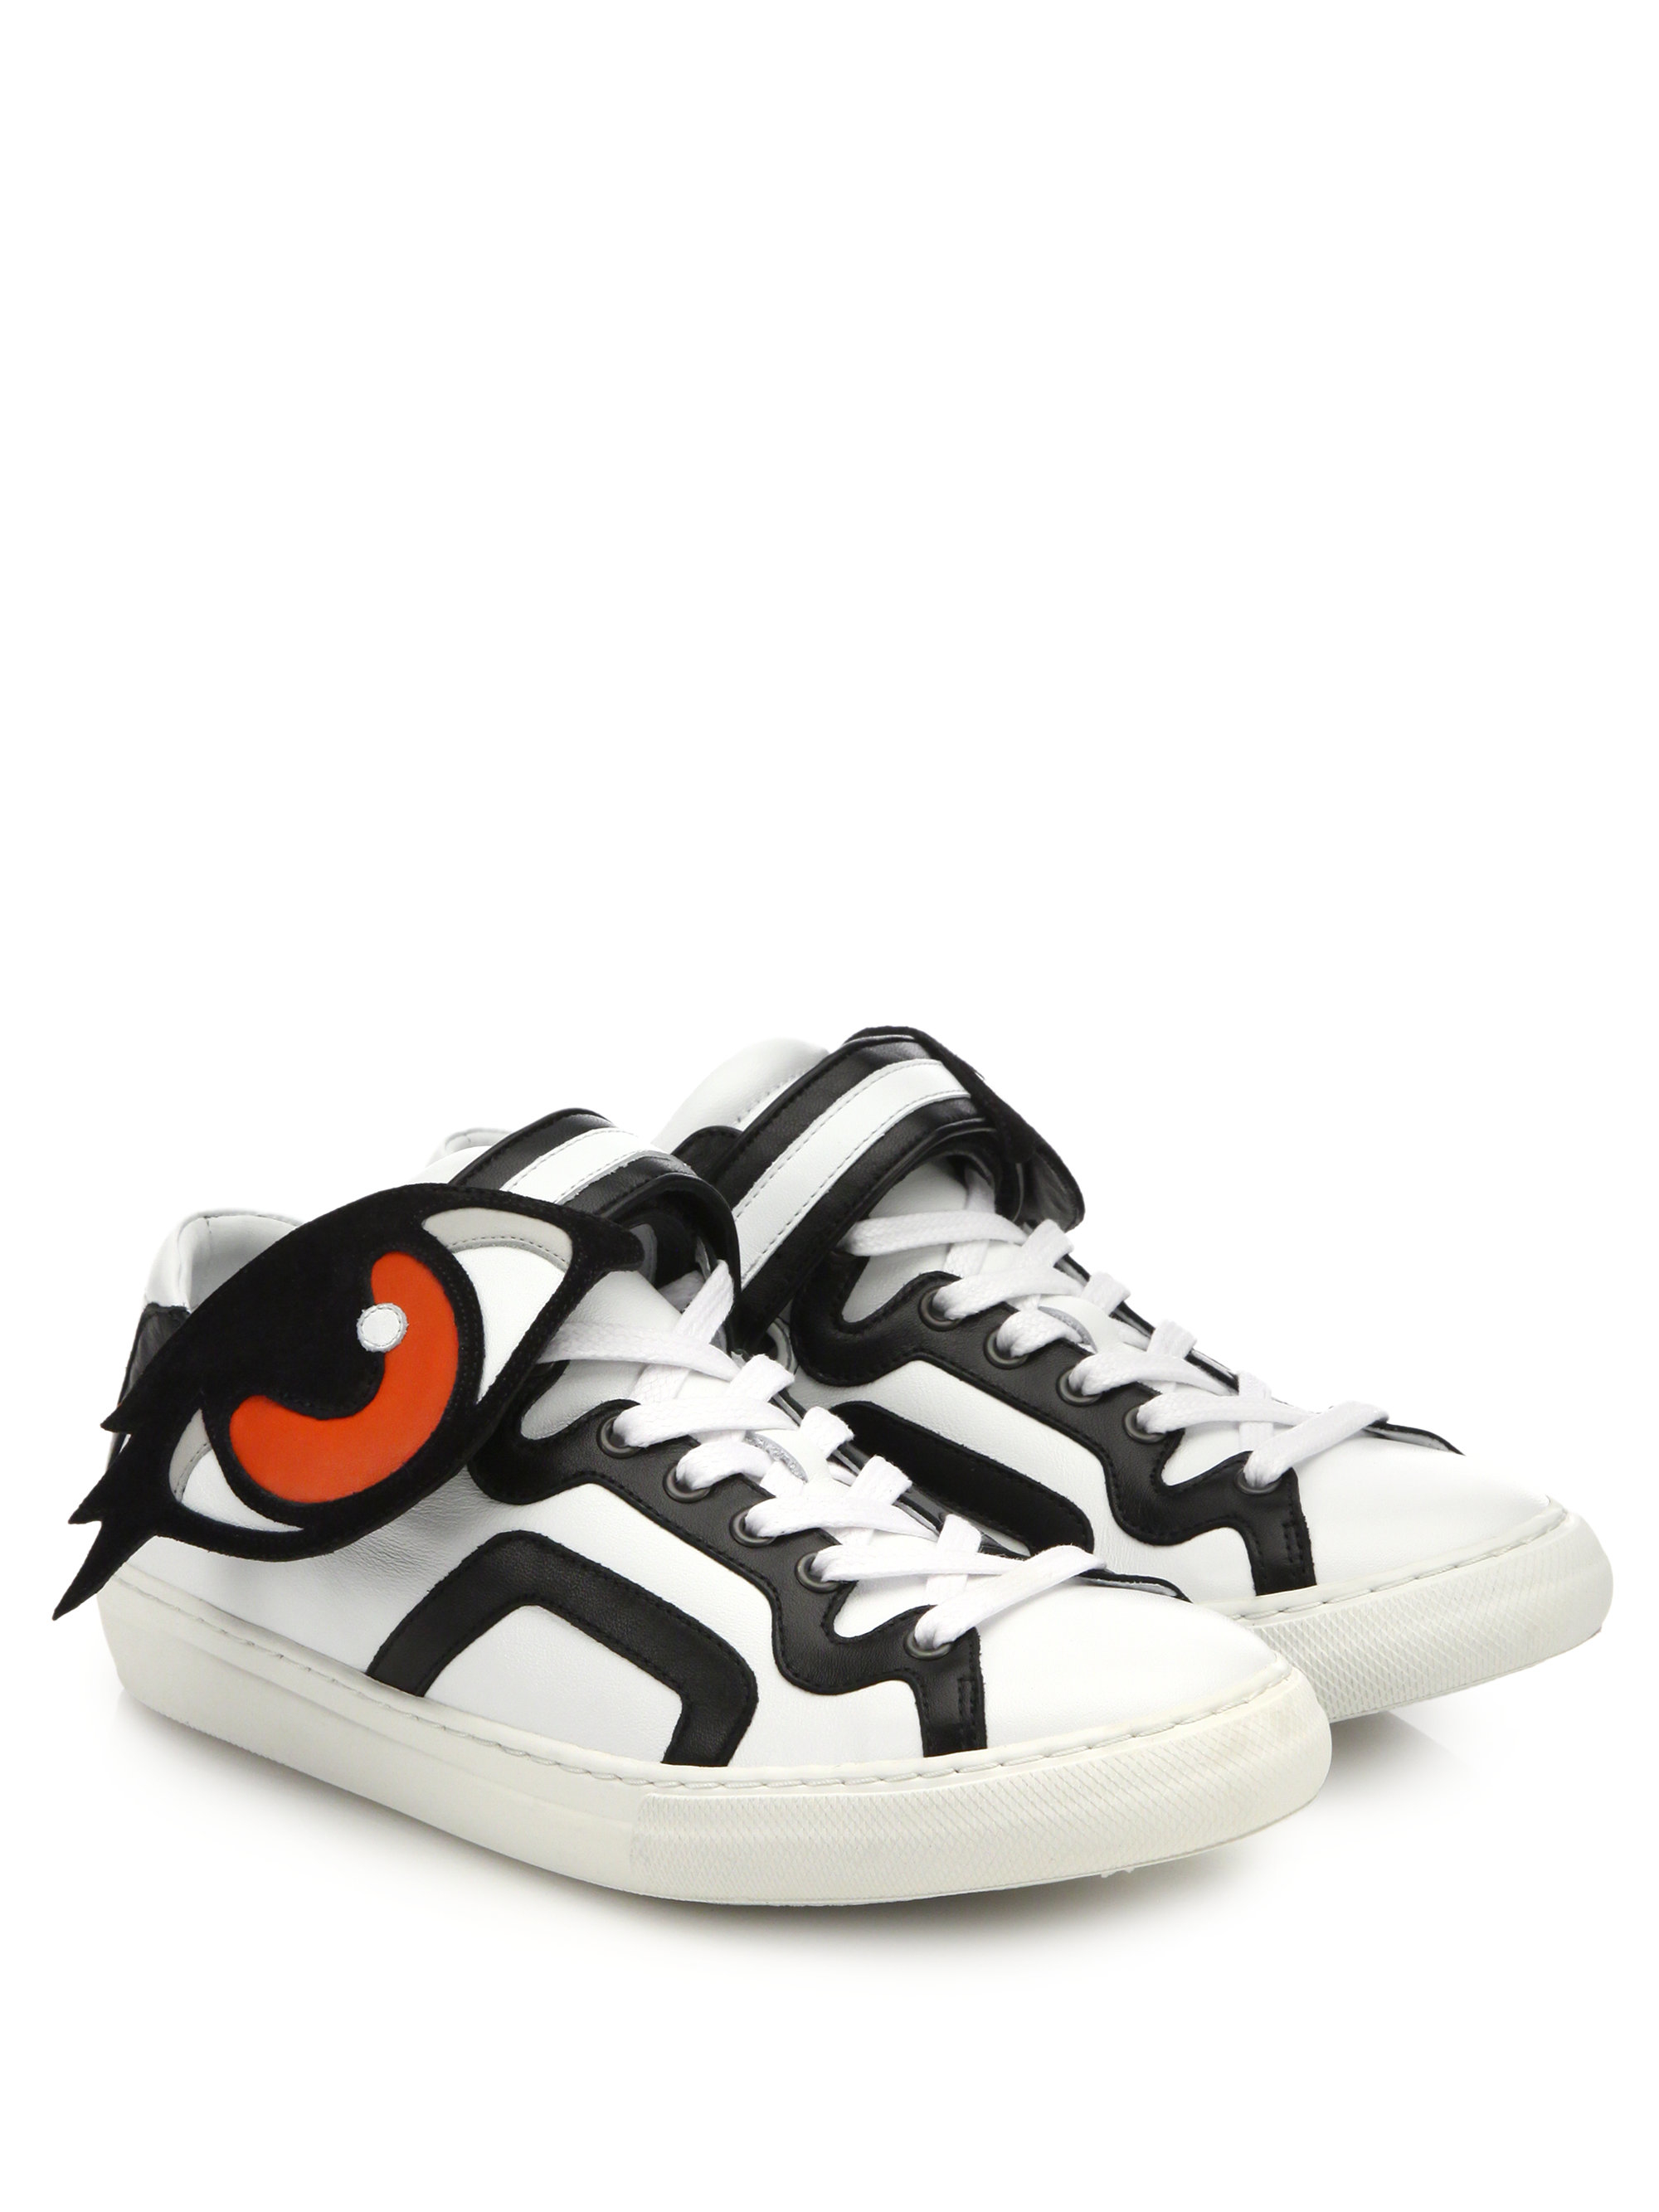 lyst pierre hardy eye paneled leather sneakers in white. Black Bedroom Furniture Sets. Home Design Ideas